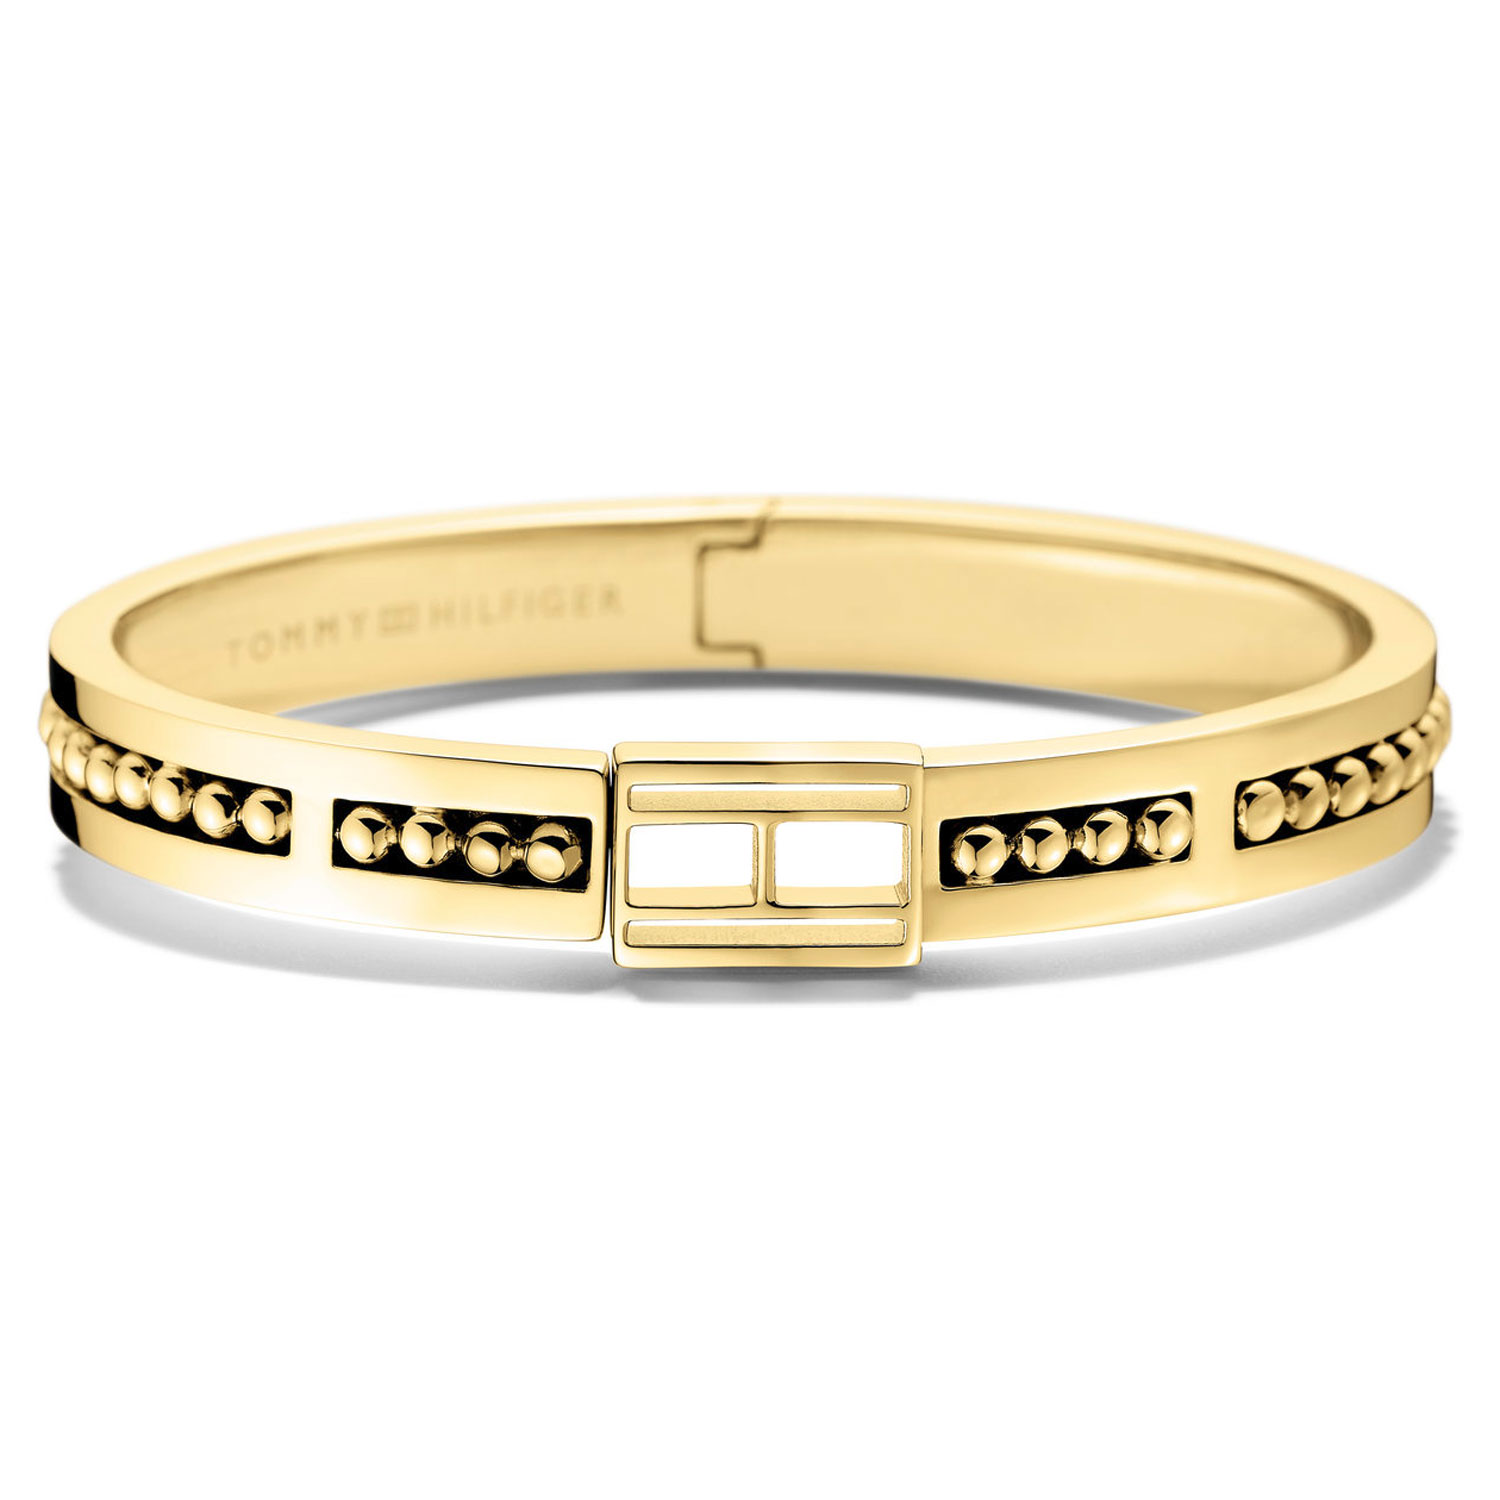 28a711cdb Tap to expand · Tommy Hilfiger ladies bracelet with gold stainless steel  2700846. Tommy Hilfiger jewelry box